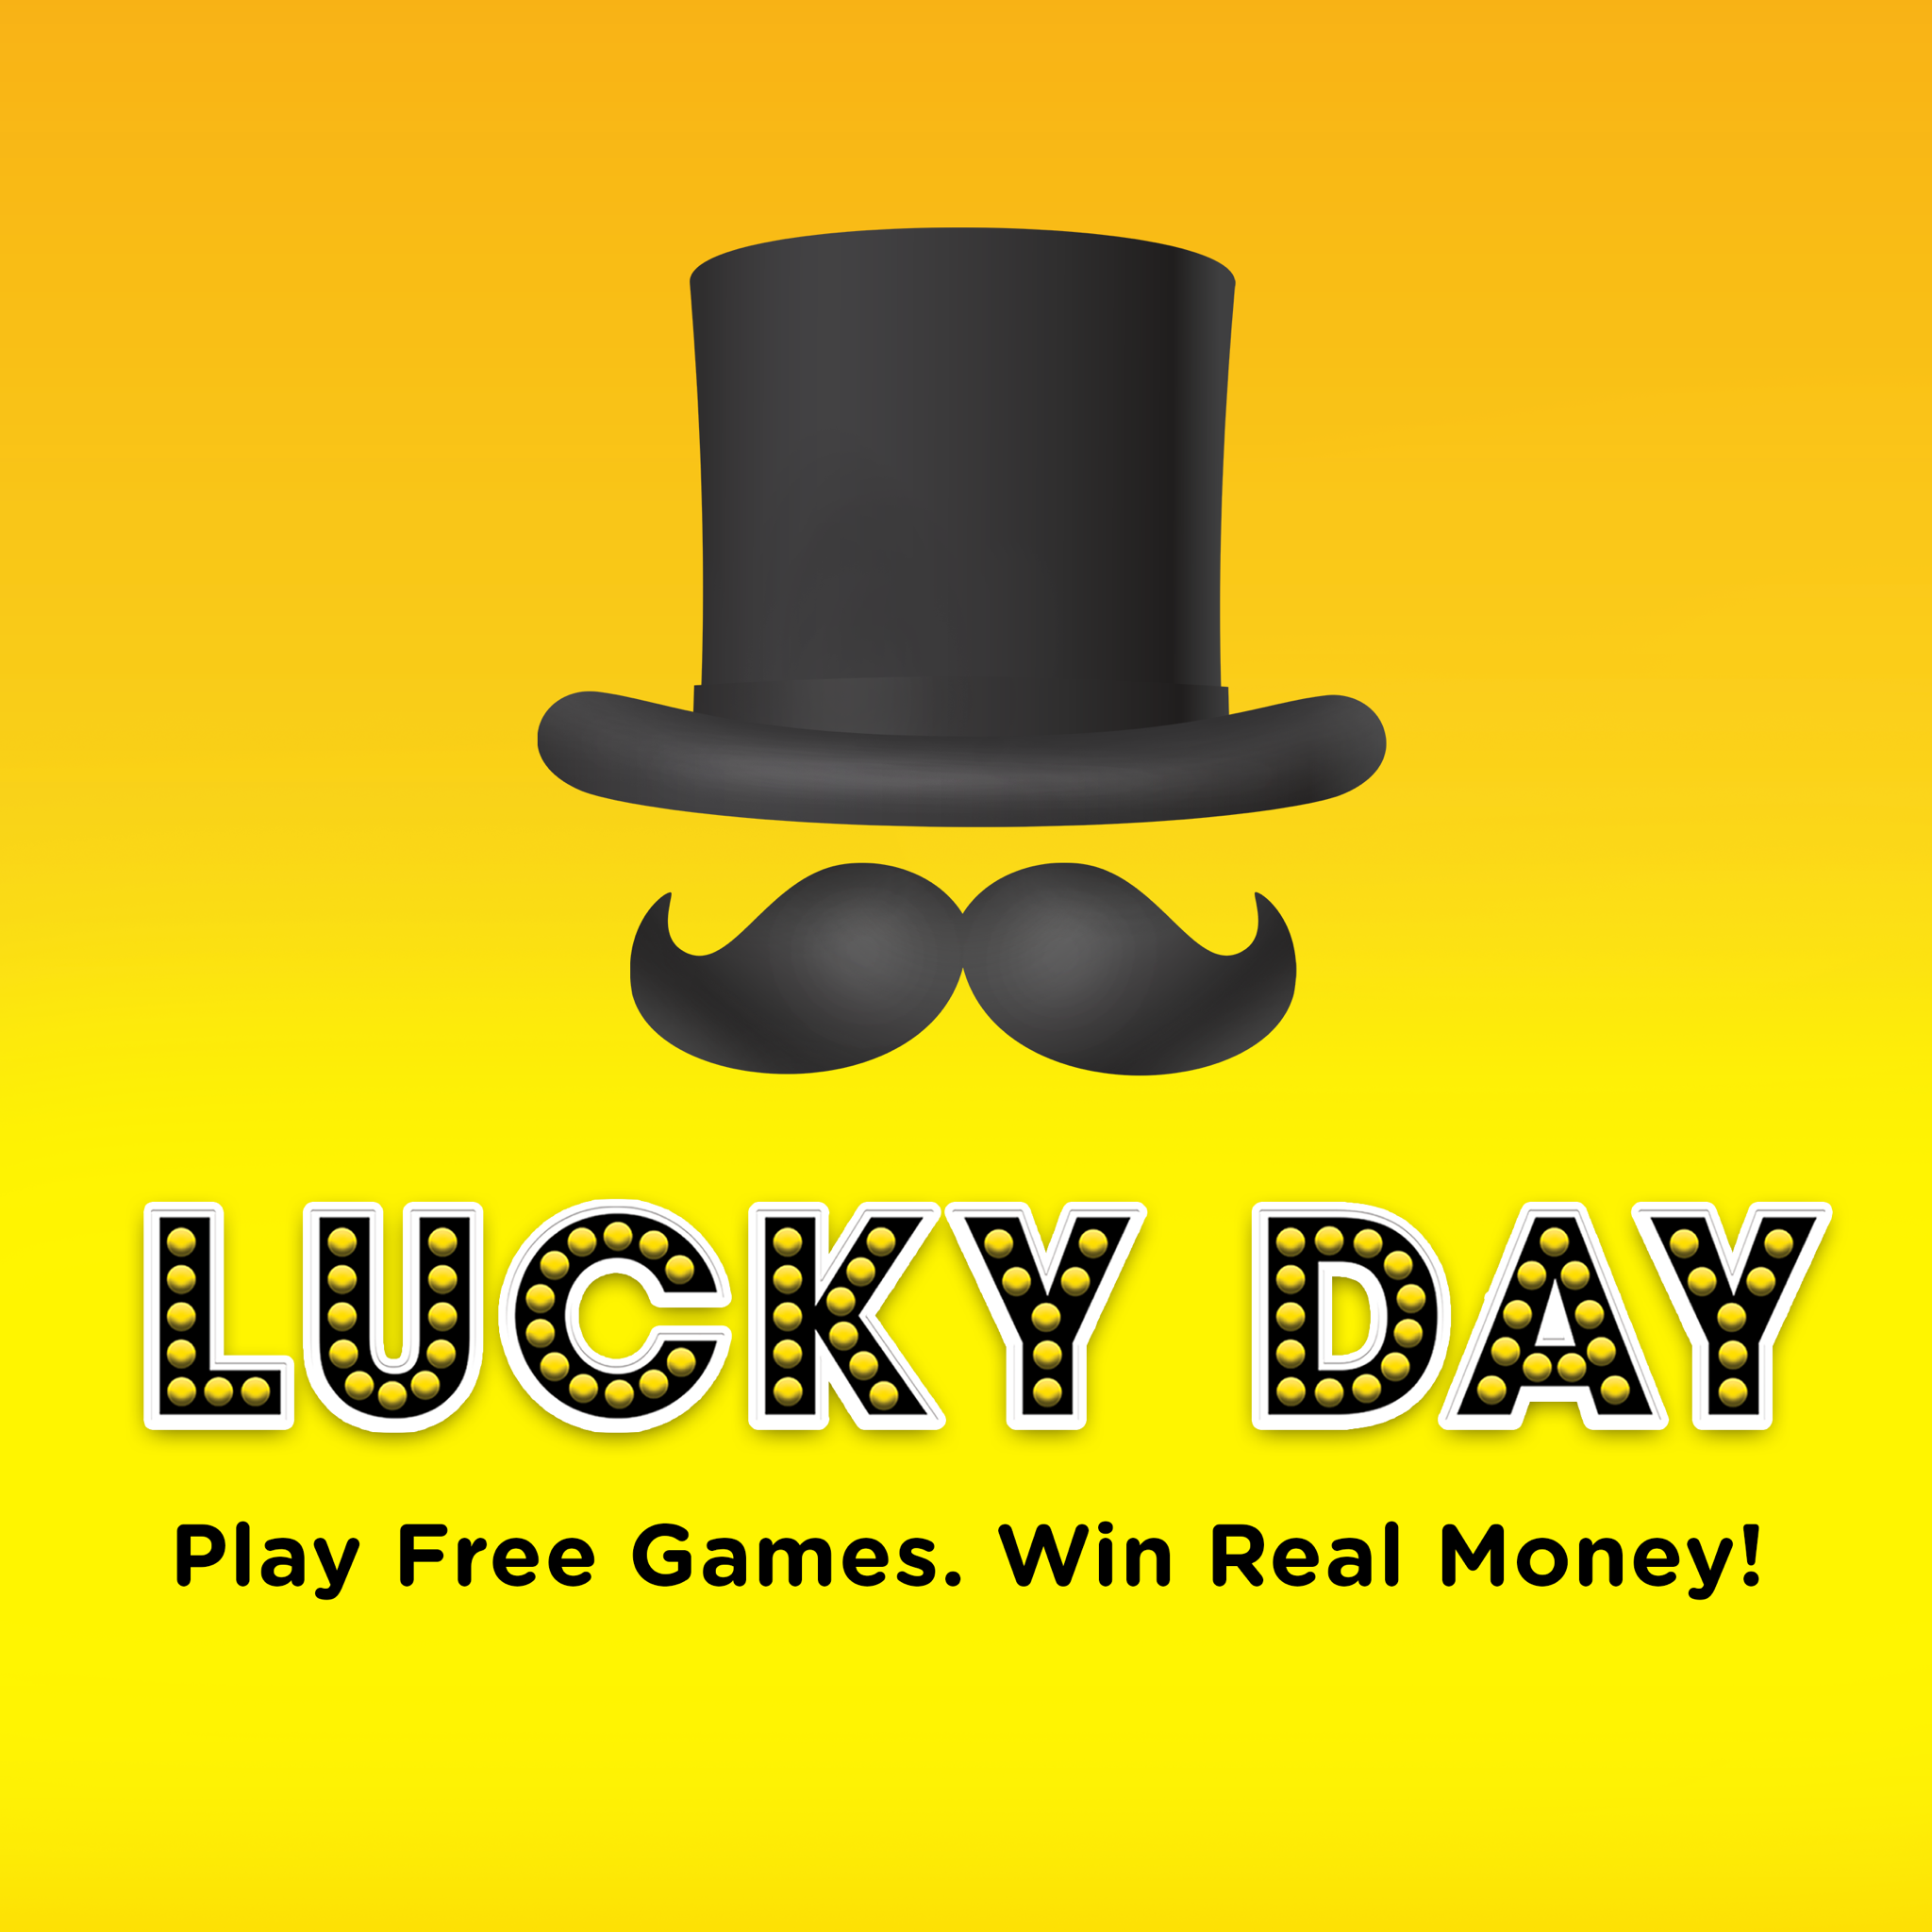 Lucky Day offers free scratcher, lotto, and raffle games